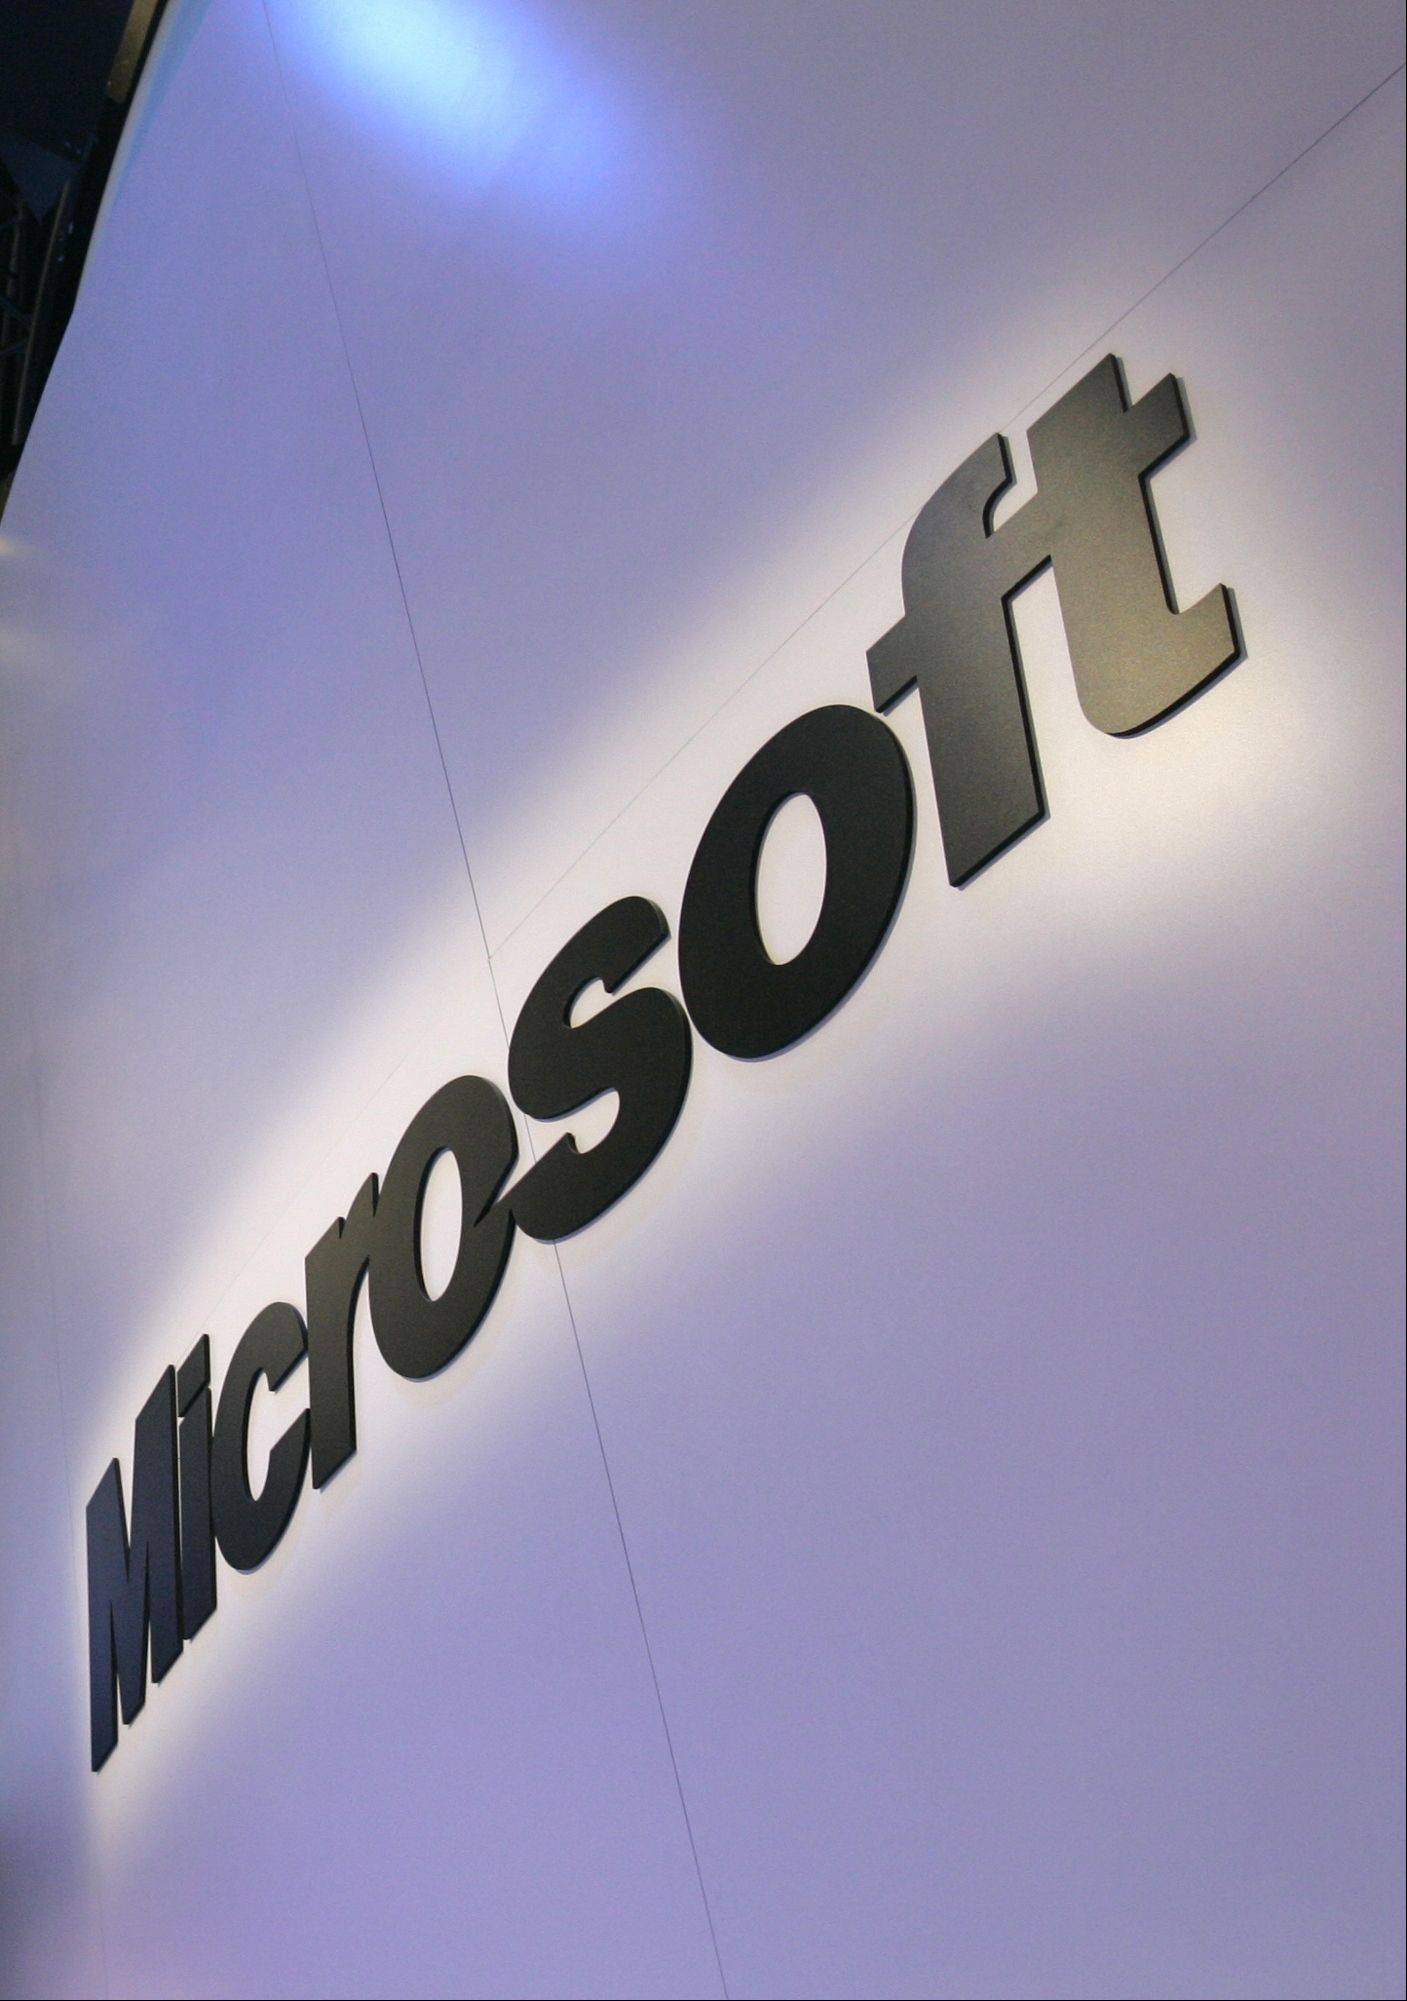 Microsoft is making a clean break with hotmail and launching a new email service � Outlook � that could challenge Gmail.